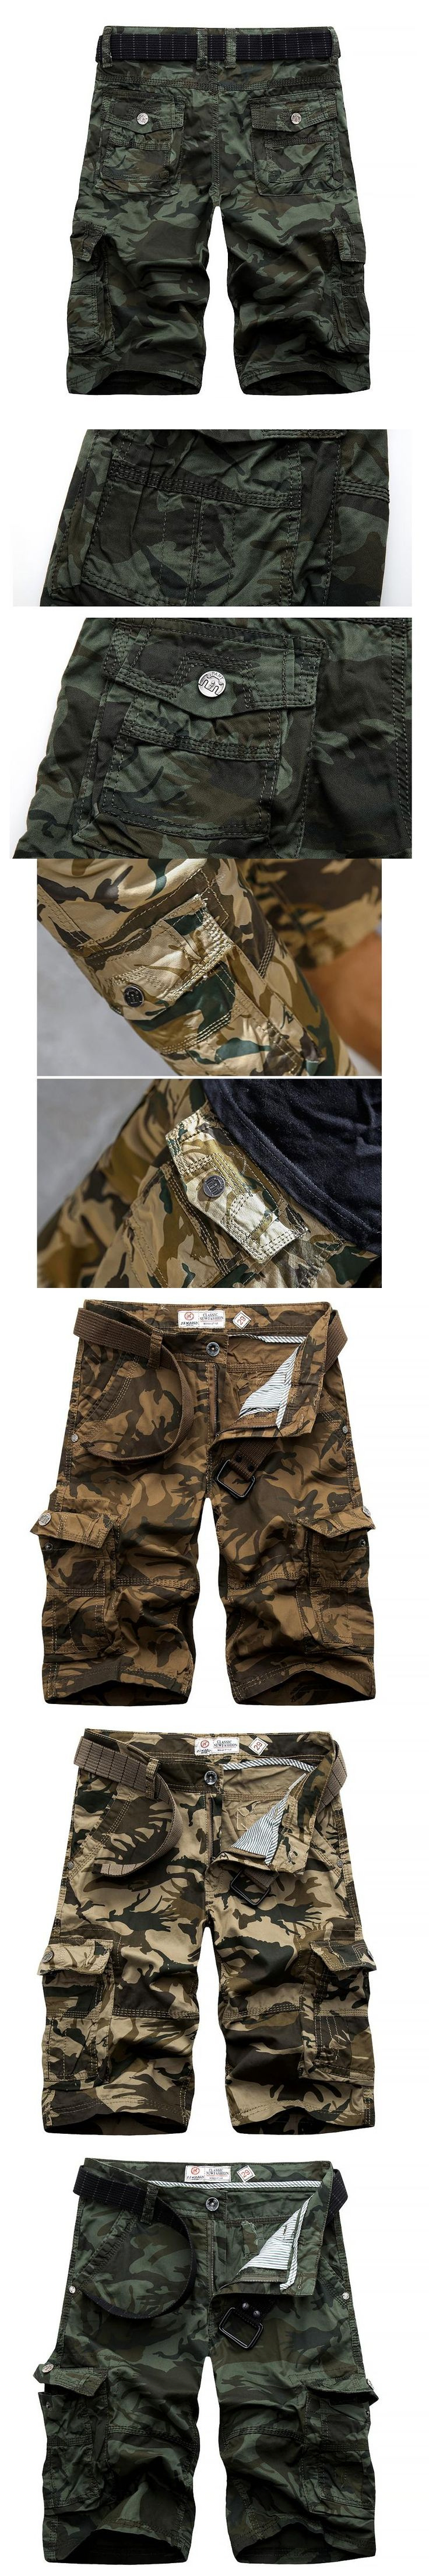 2017 summer men's cargo shorts casual beach work shorts overall bermuda masculina camouflage trousers 29-38 CYG230